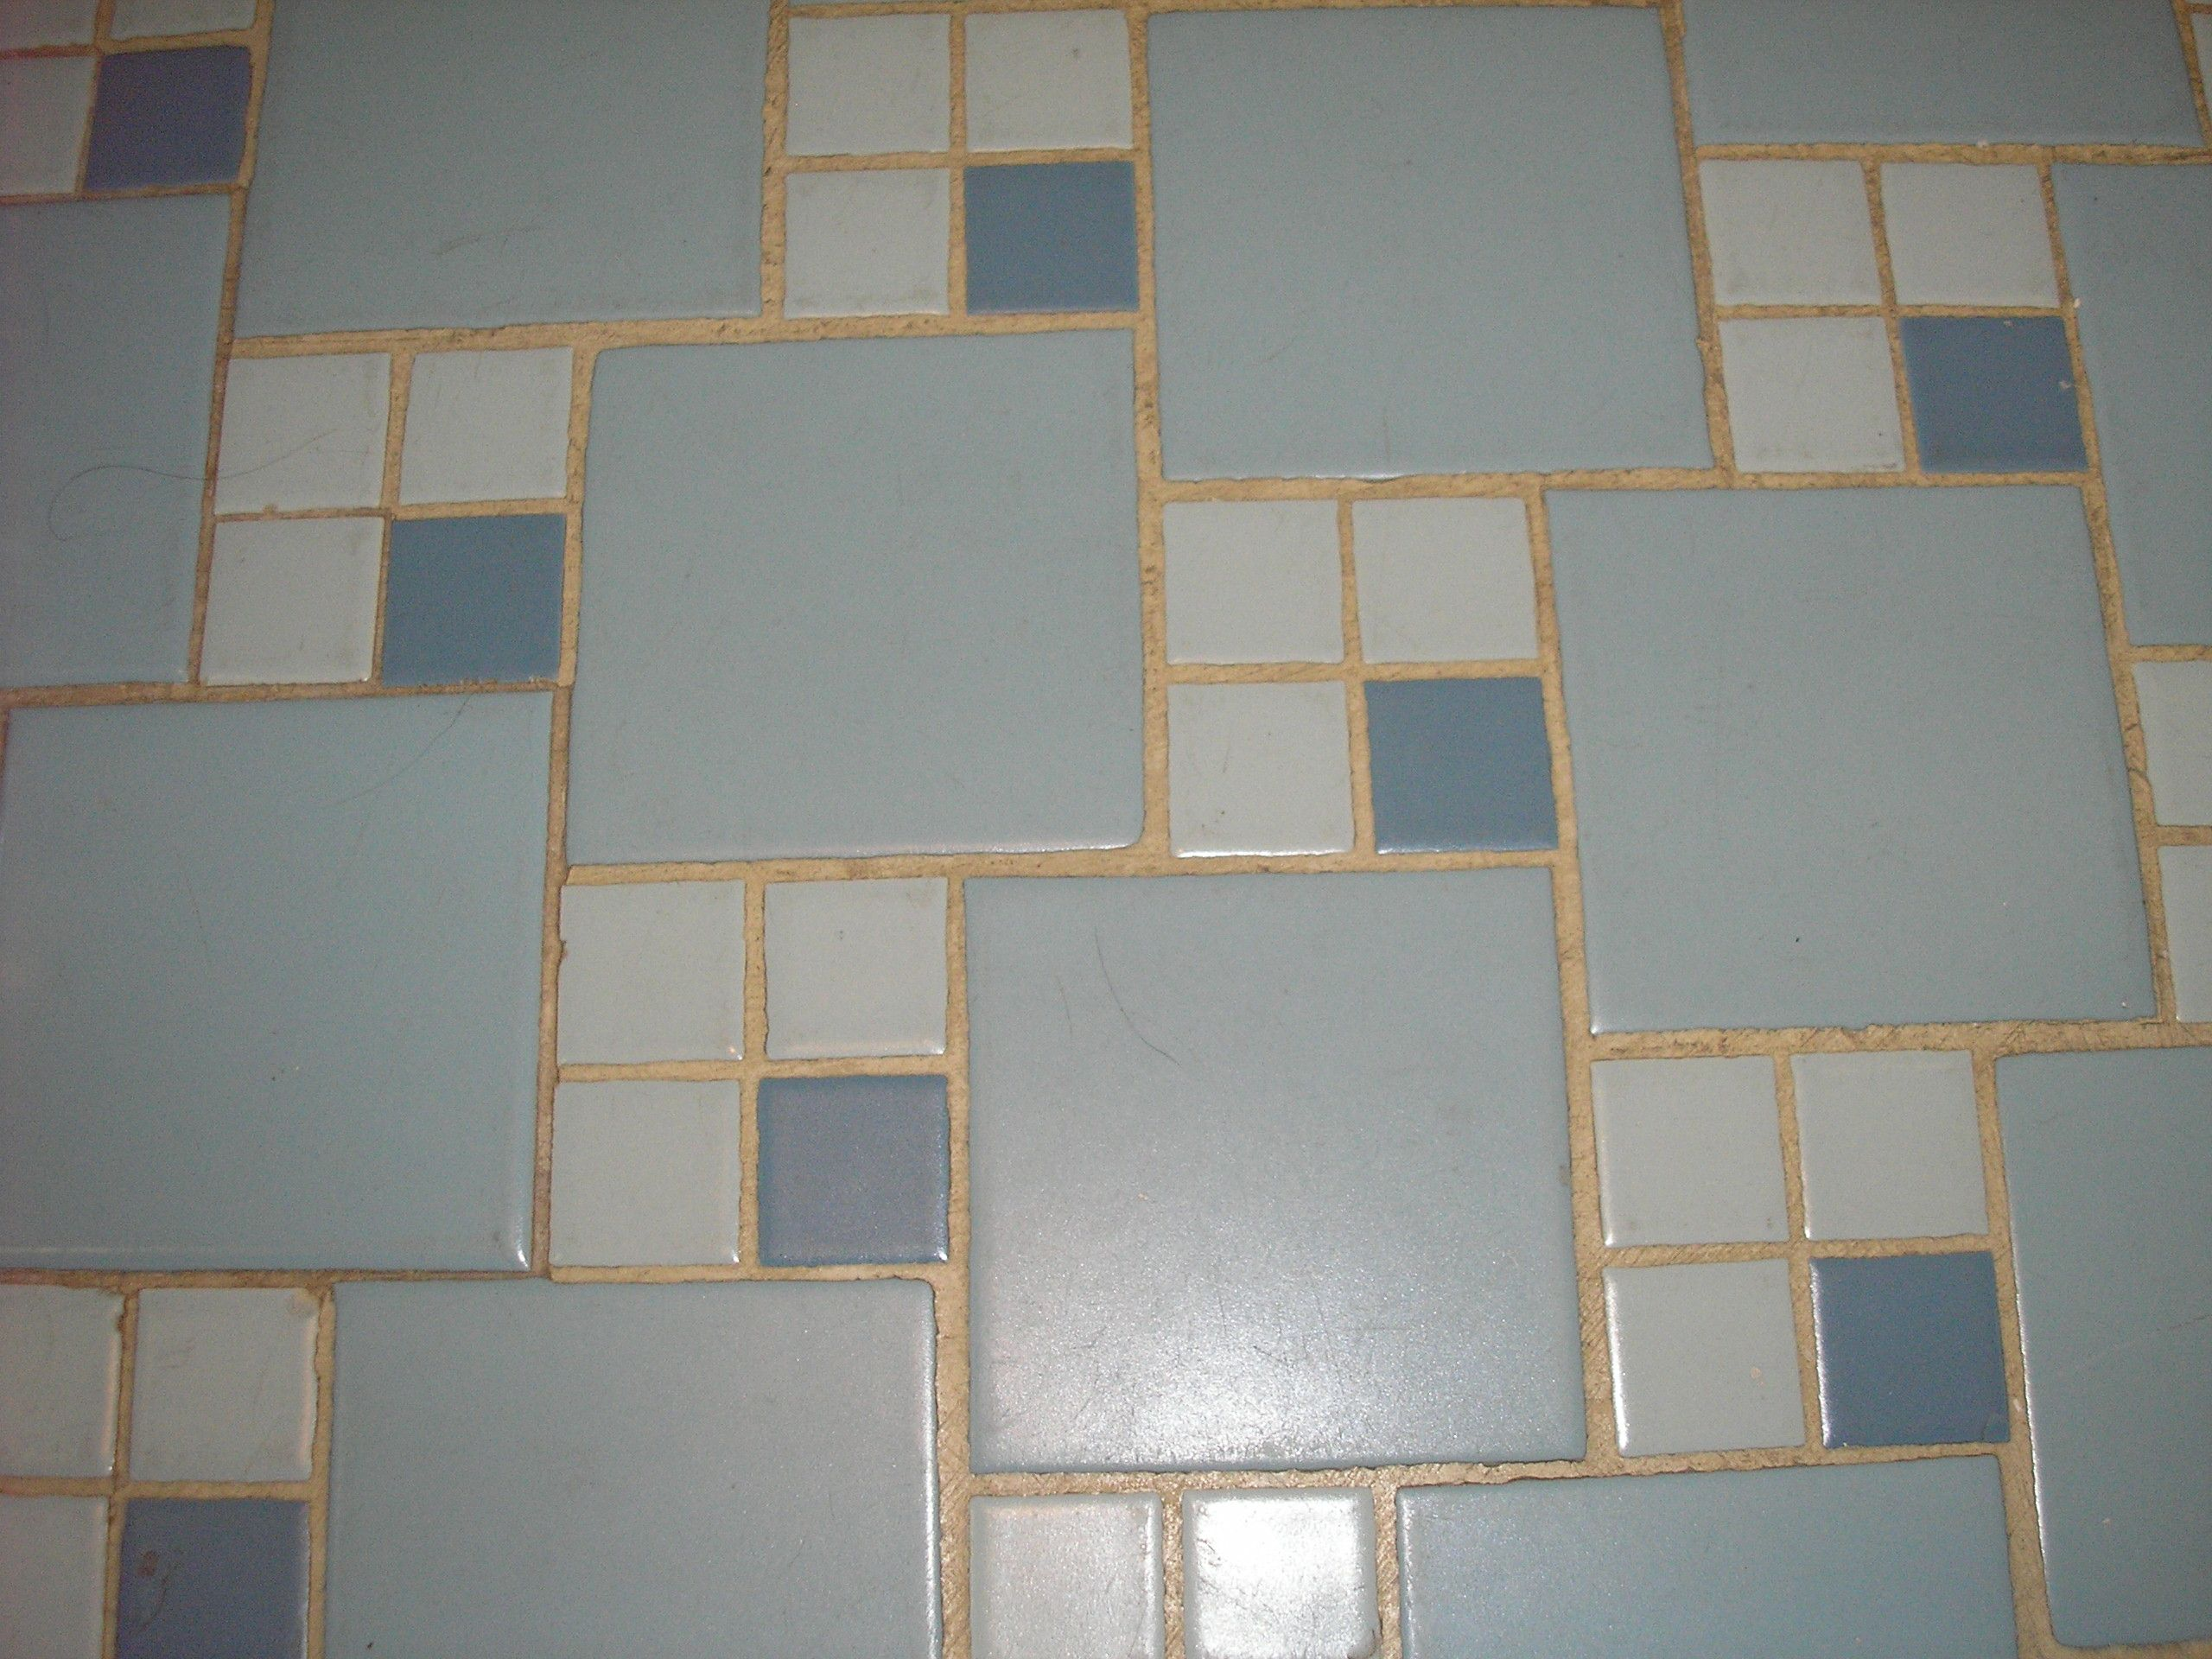 replicating alice's blue 50s bathroom tile floor | 50s bathroom